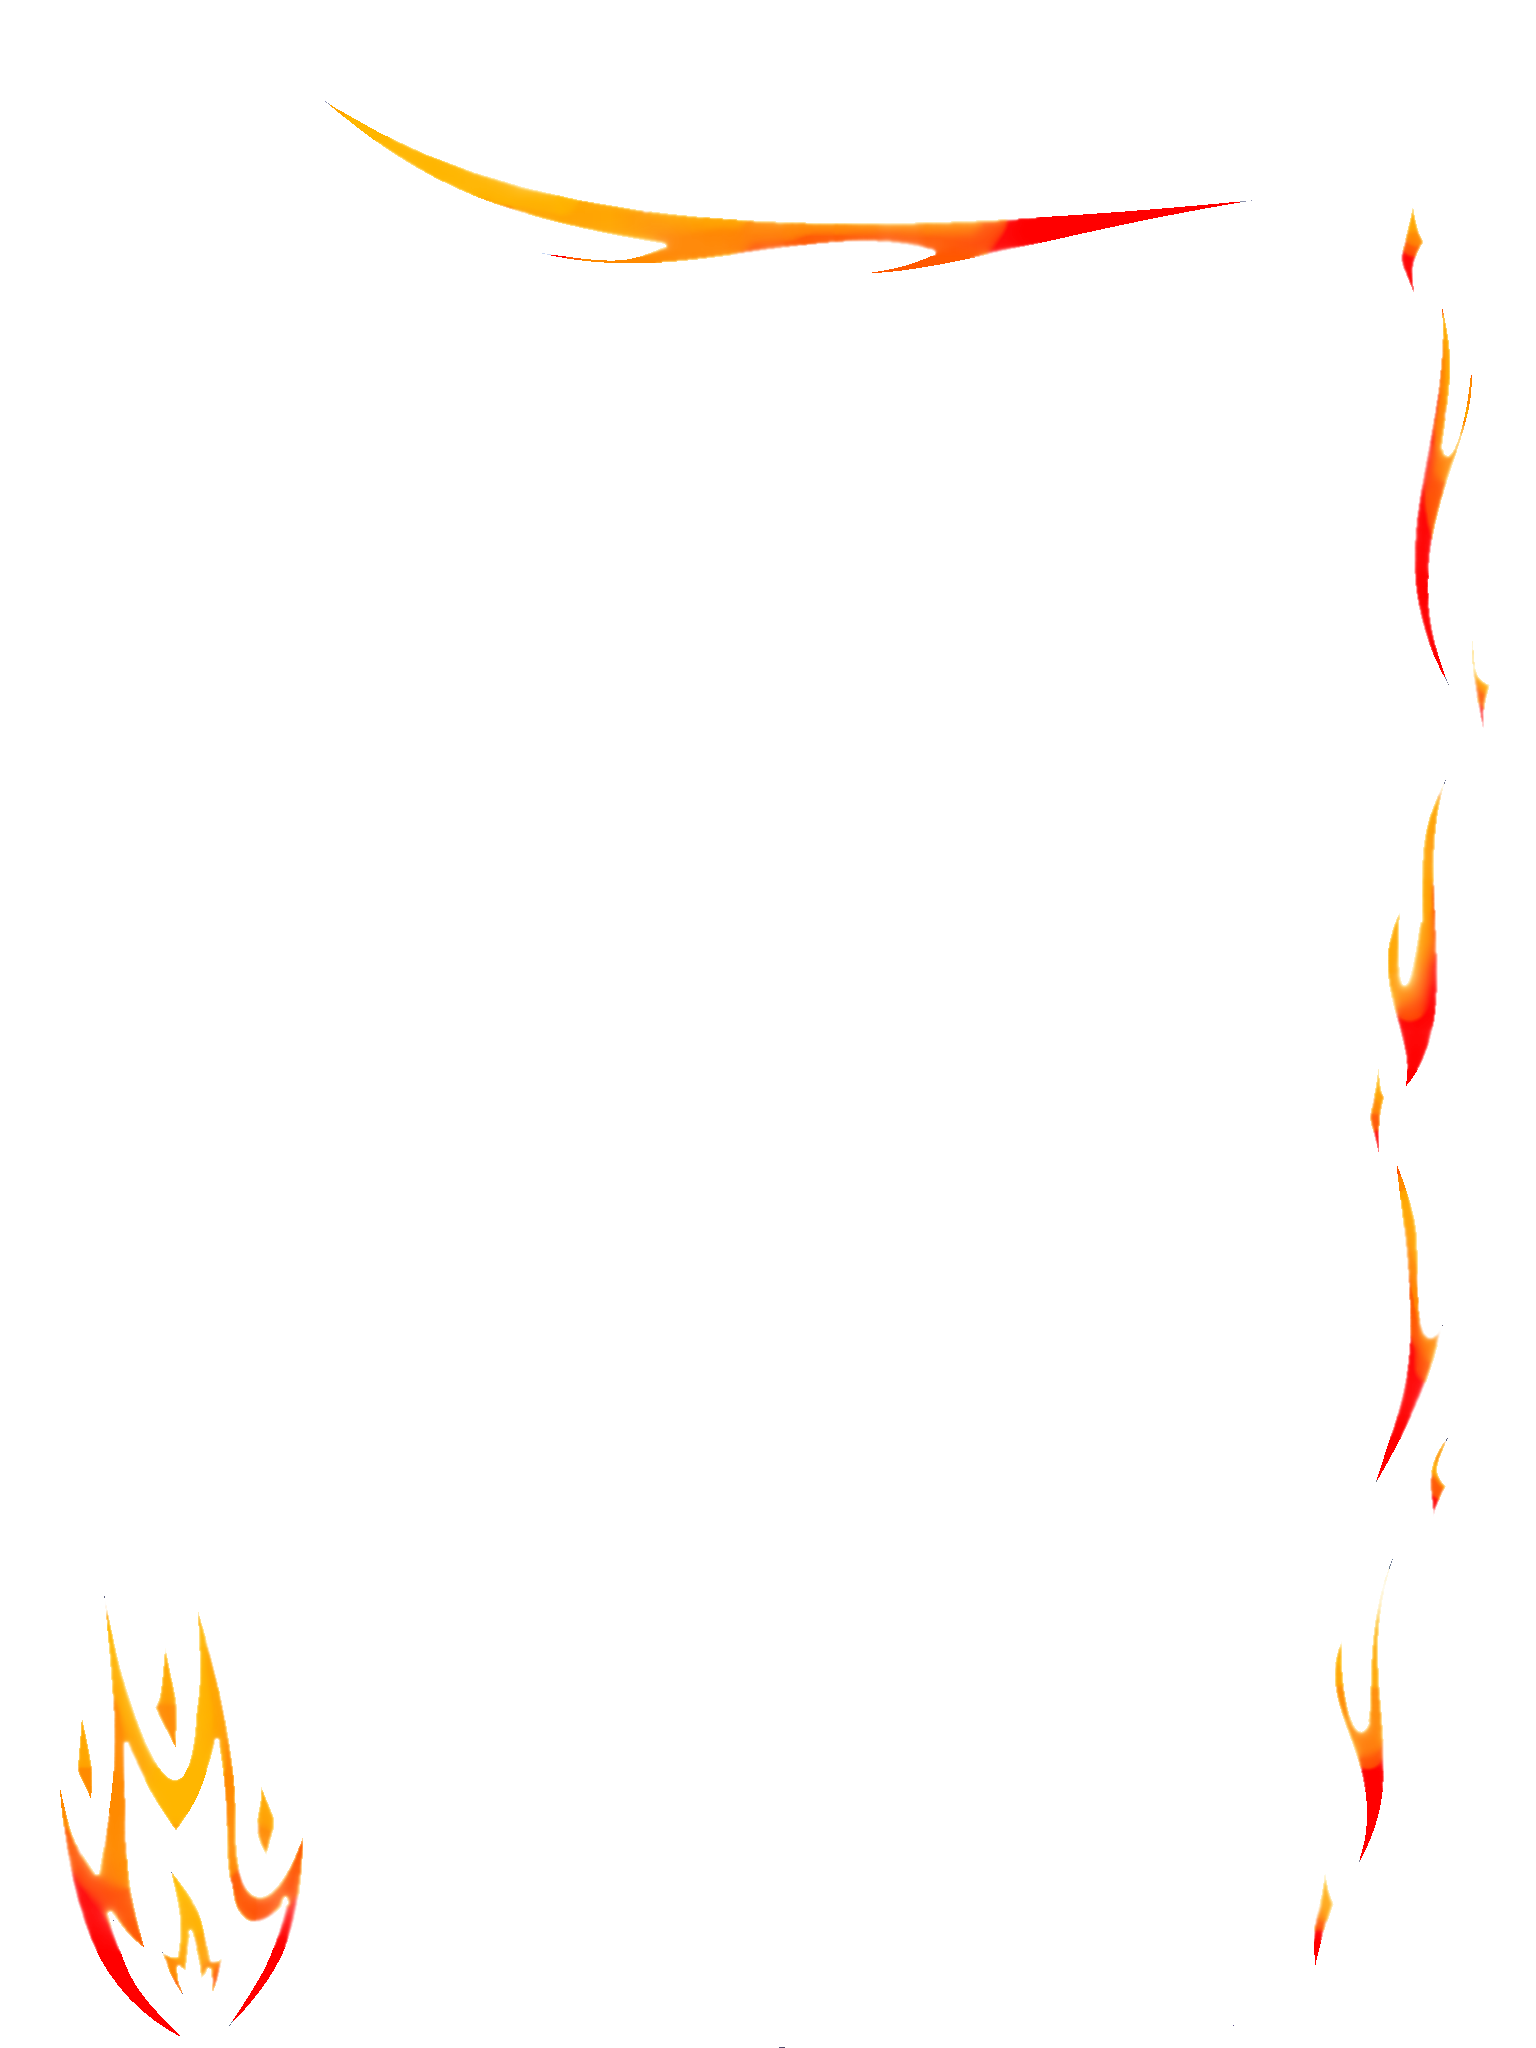 Fire border png. Flames vector images